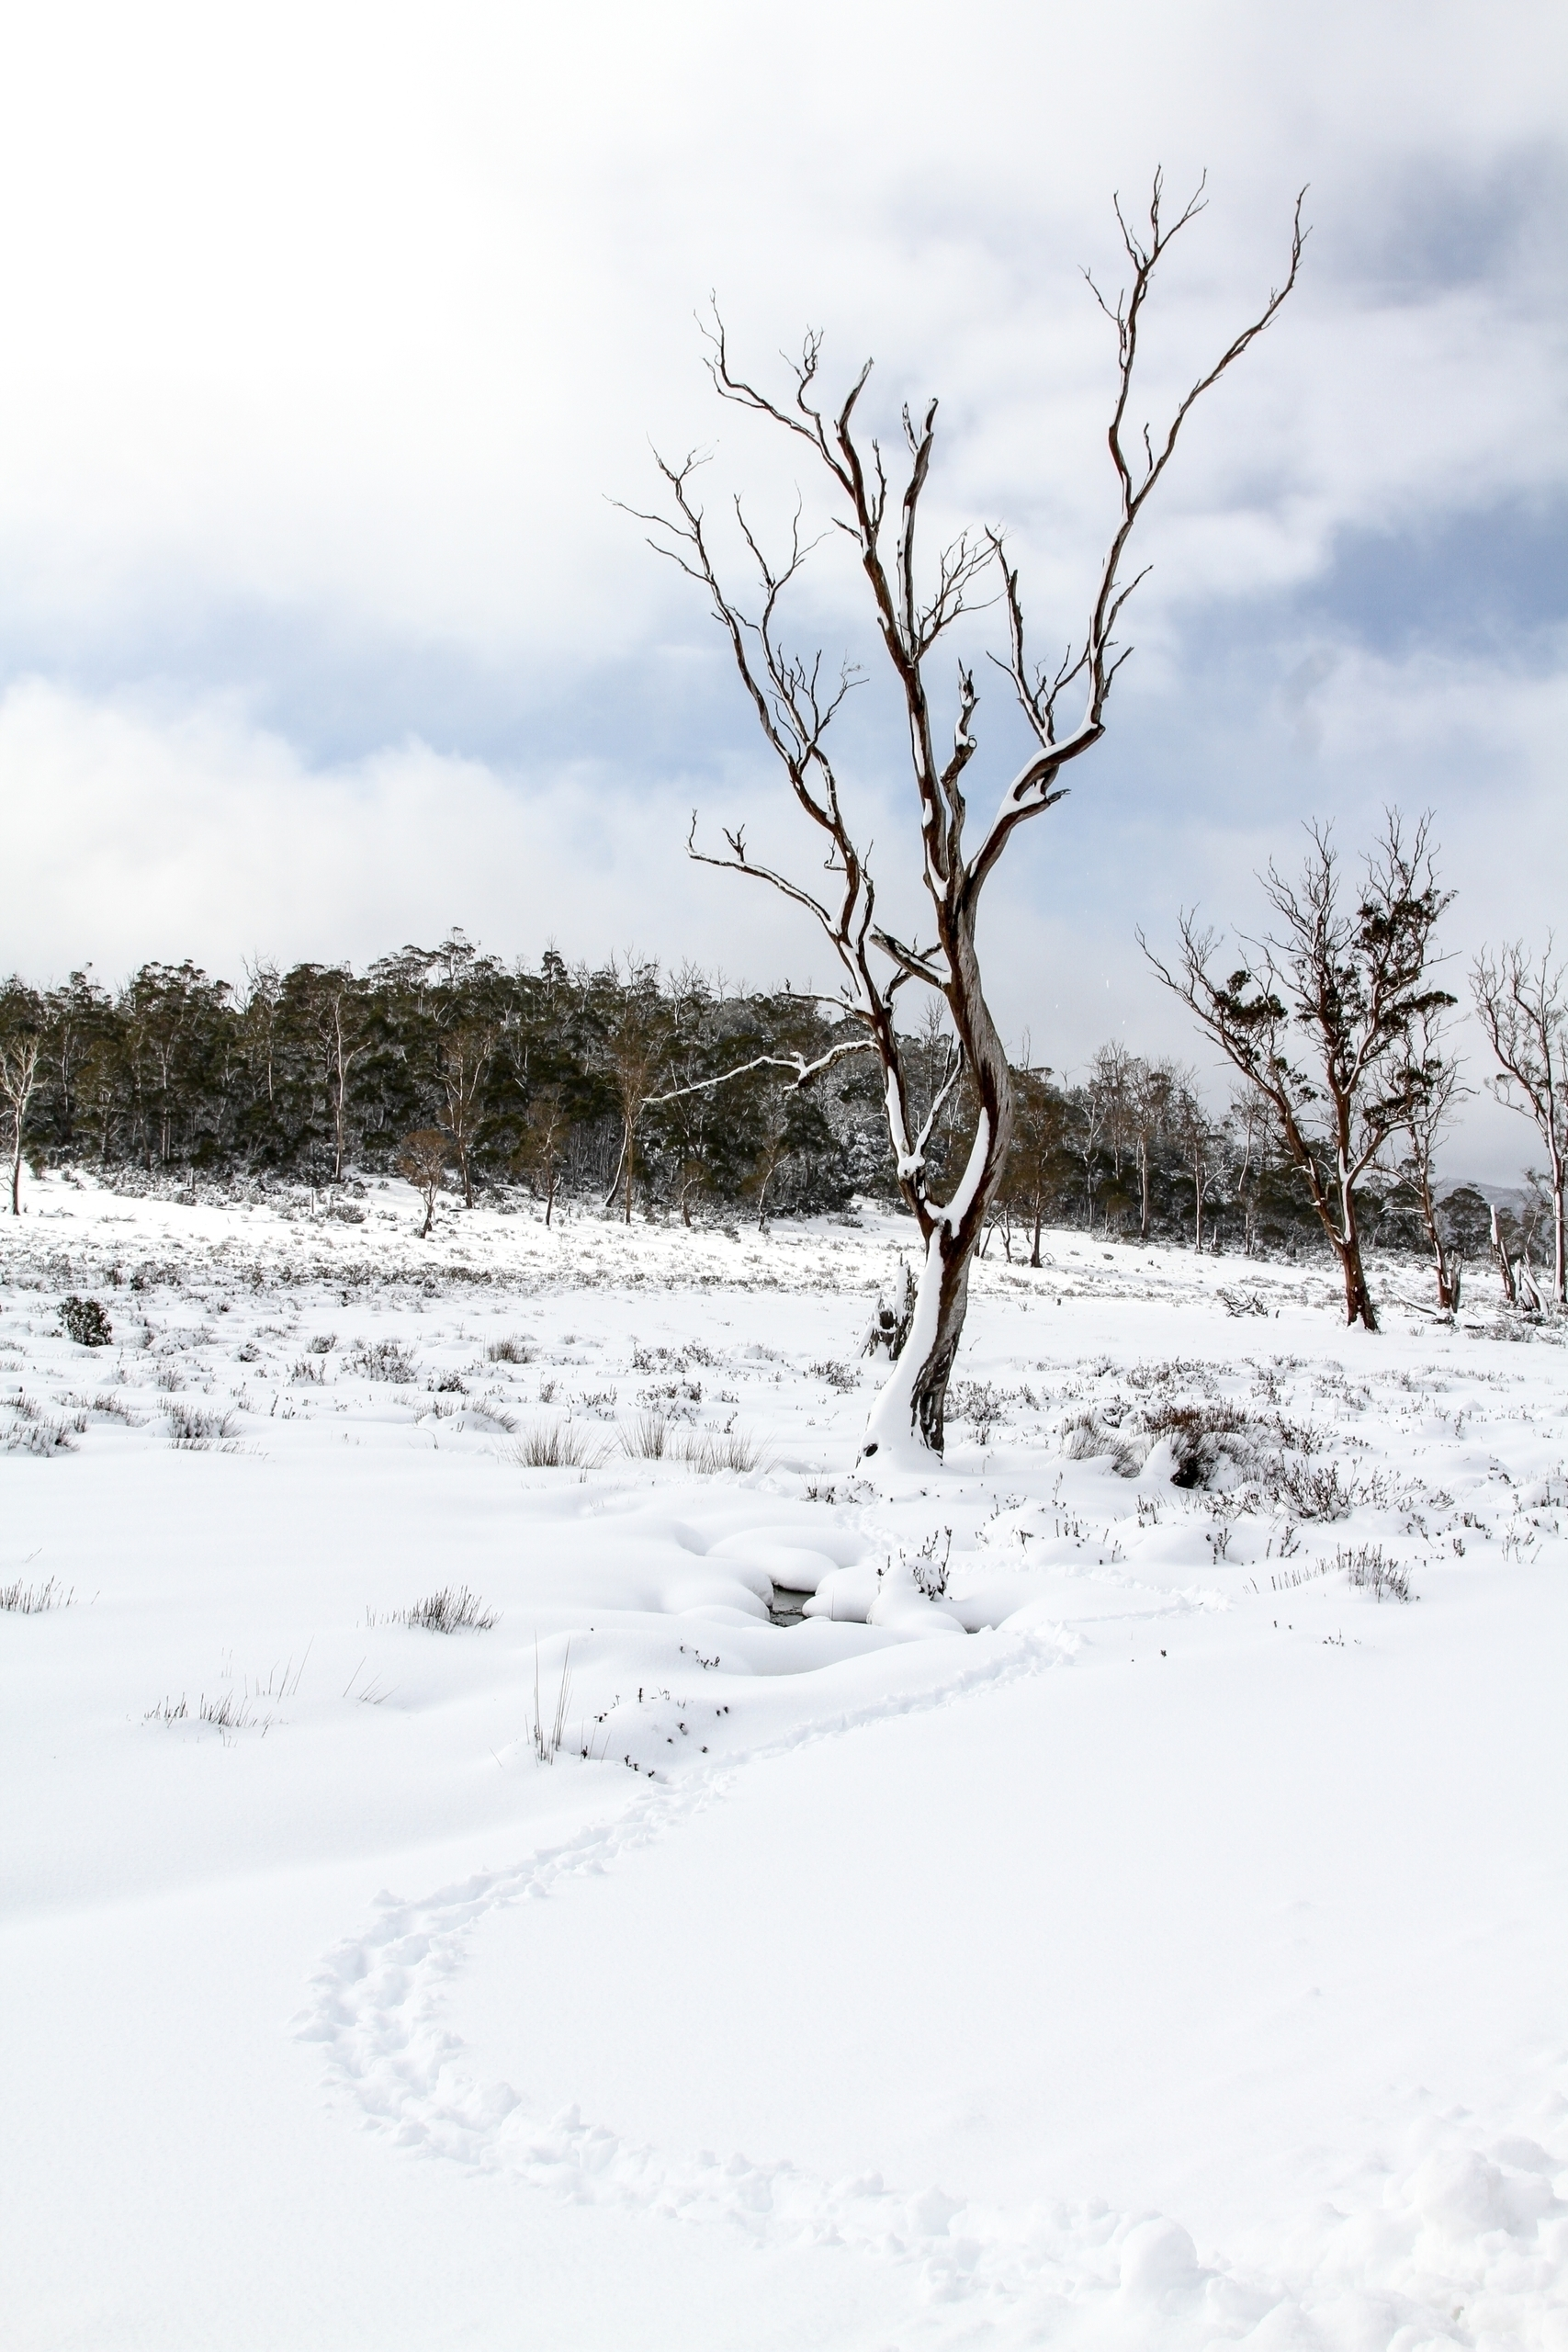 Spring snows, highlands - Tasmania - b_goat | ello